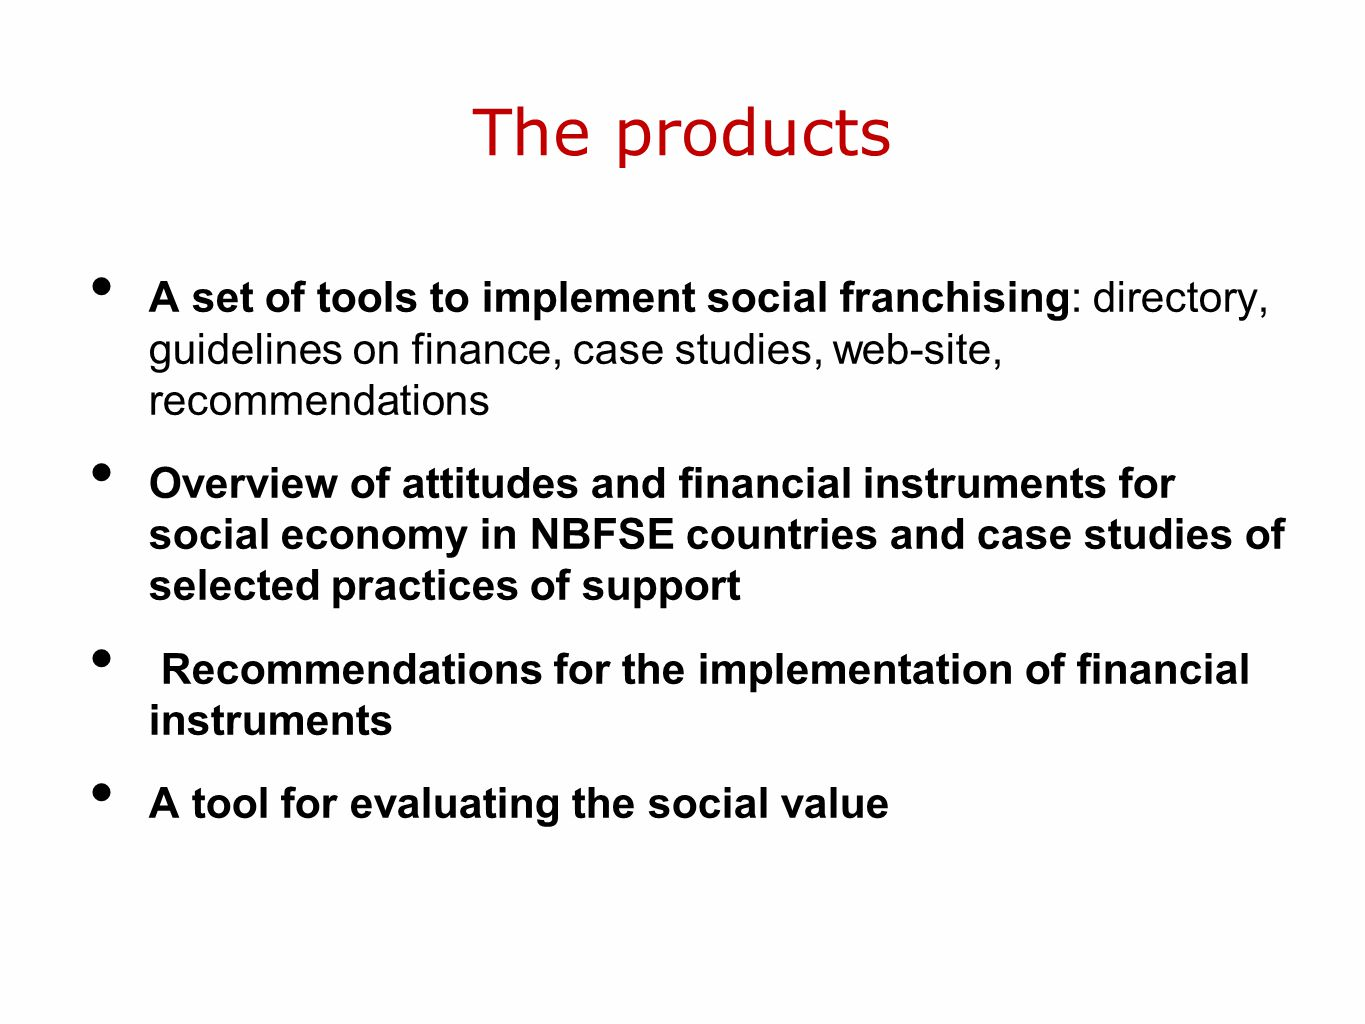 The products A set of tools to implement social franchising: directory, guidelines on finance, case studies, web-site, recommendations Overview of attitudes and financial instruments for social economy in NBFSE countries and case studies of selected practices of support Recommendations for the implementation of financial instruments A tool for evaluating the social value